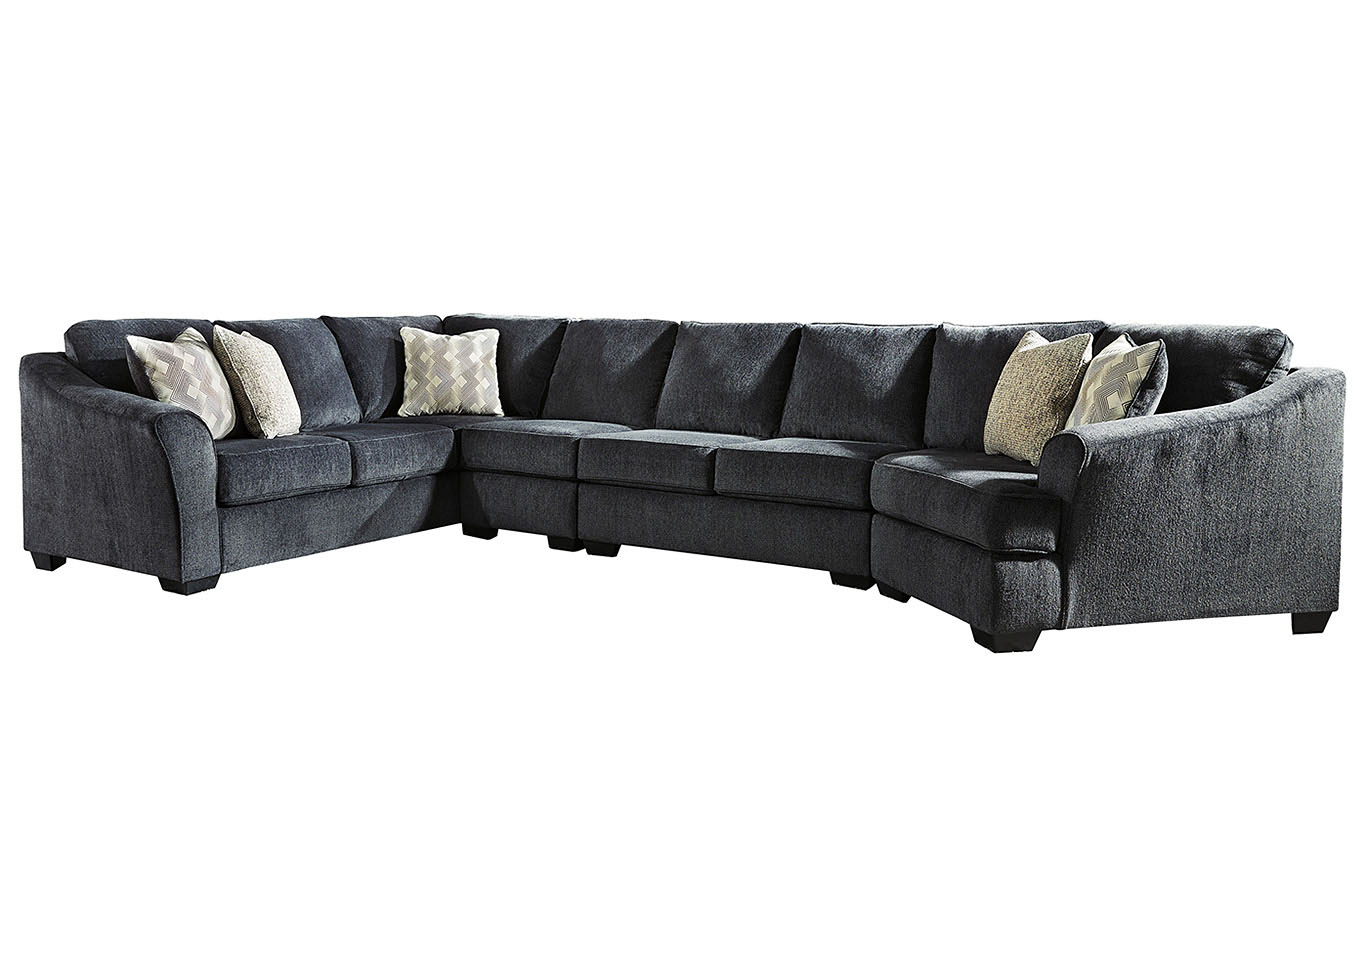 Eltmann Slate 4 Piece Sectional w/LAF Sofa & Corner Wedge,Signature Design By Ashley